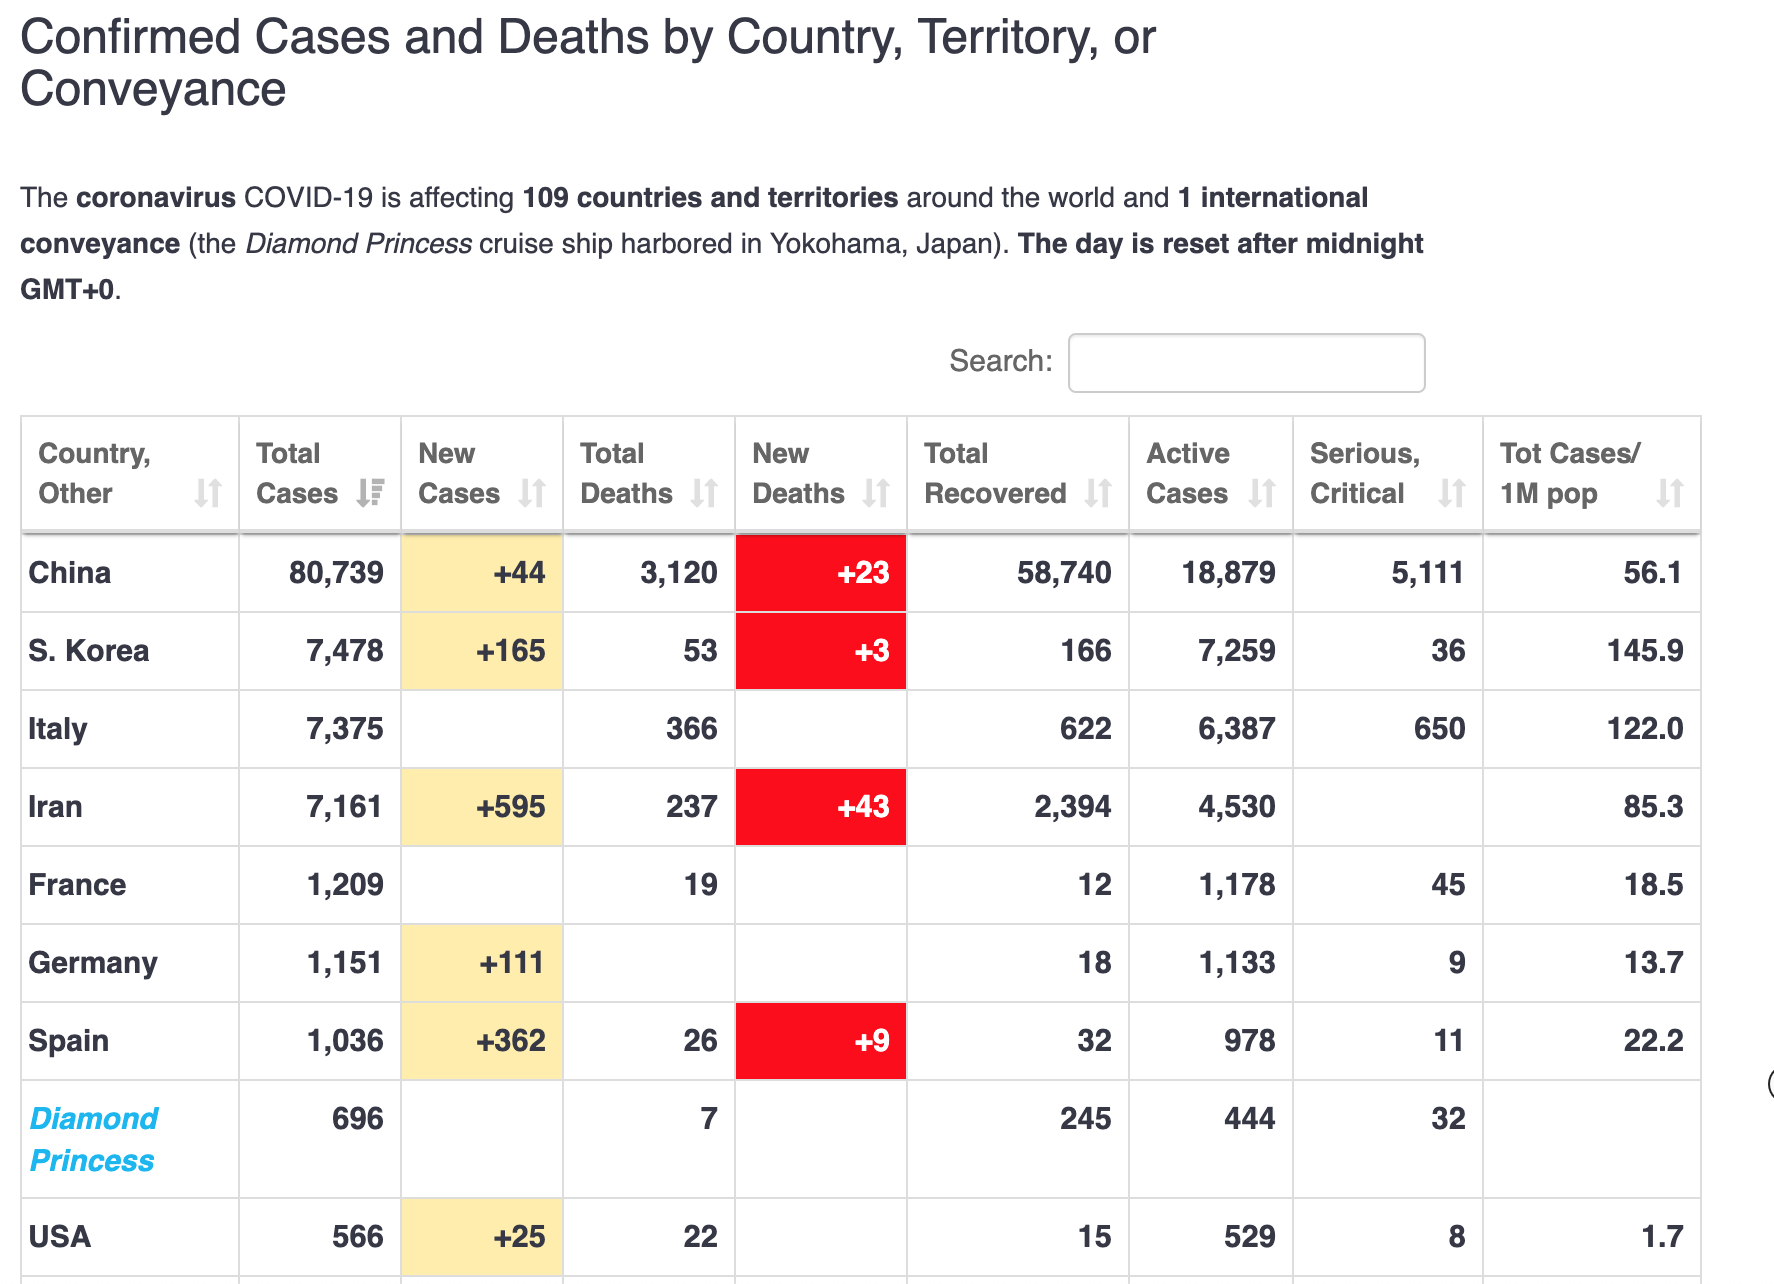 H5n1 Worldometer Coronavirus Update Live 111 645 Cases And 3 884 Deaths From Covid 19